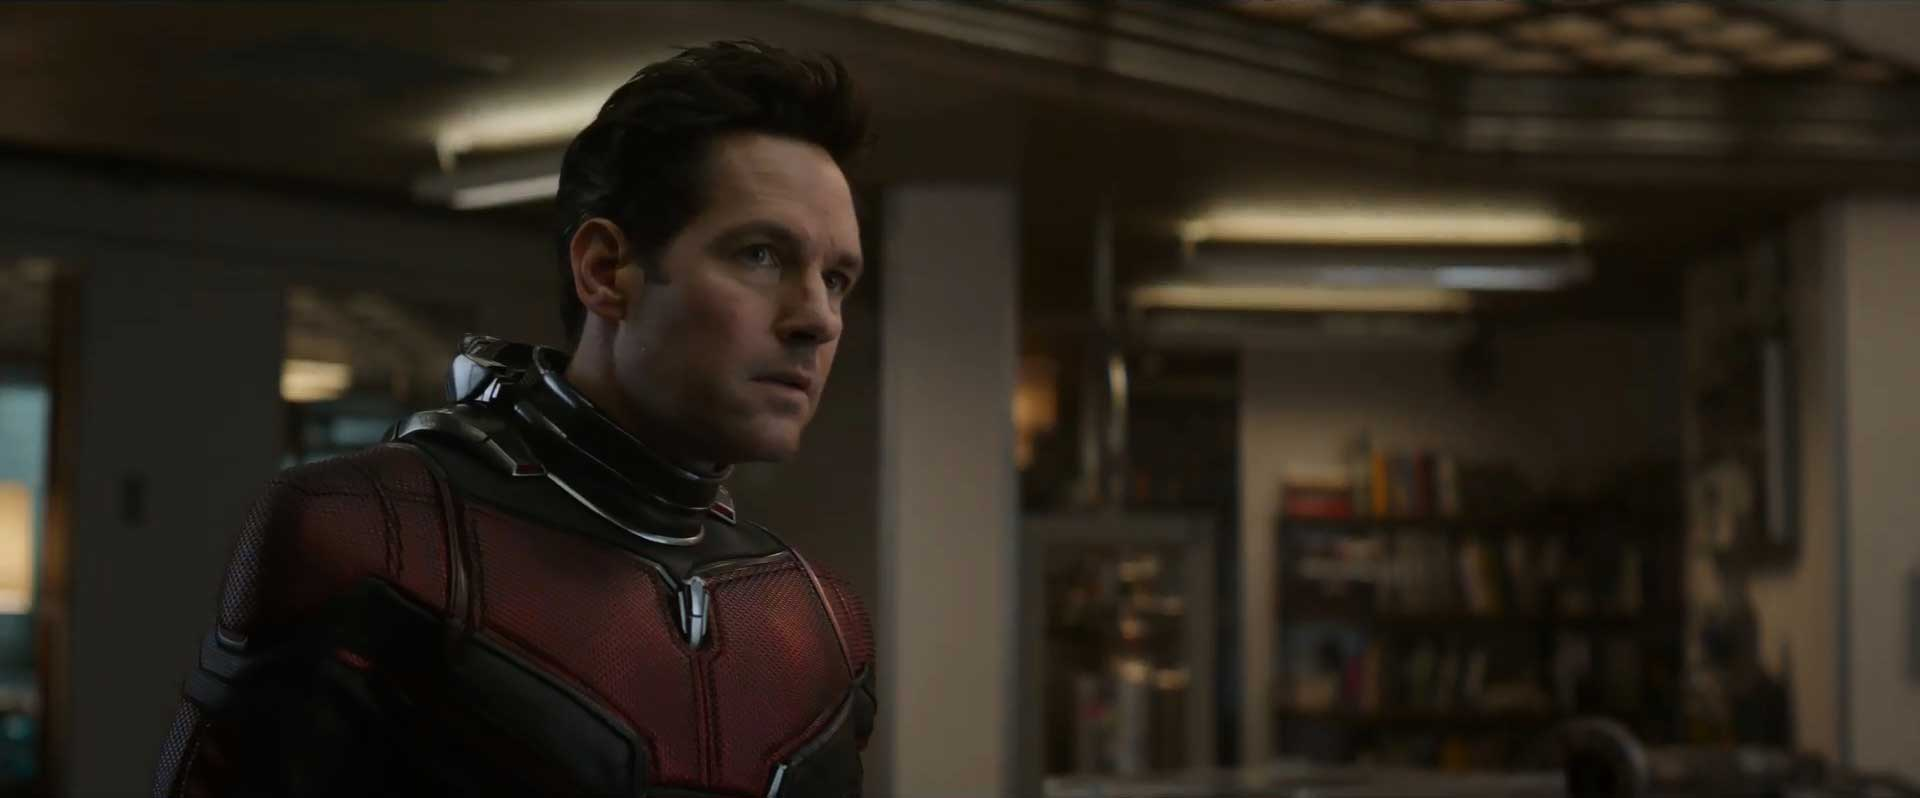 Avengers Endgame Trailer 2 Breakdown - Scott Lang Ant-Man Shining Light